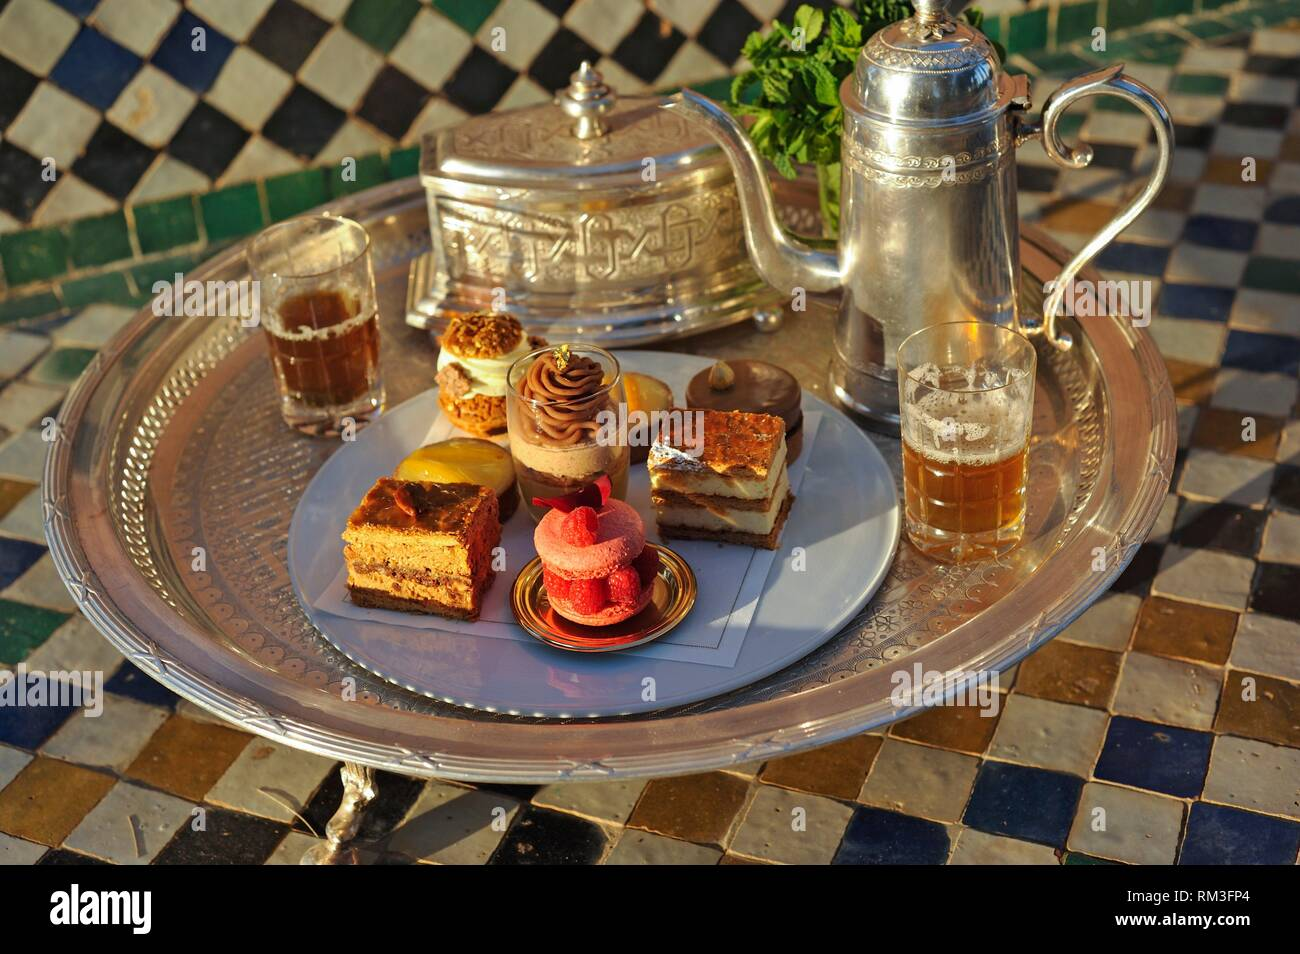 pastries designed by Pierre Herme and made by Richard Bourlon, served with mint tea at the pavillion Menzeh within the gardens of the luxury 5 stars - Stock Image